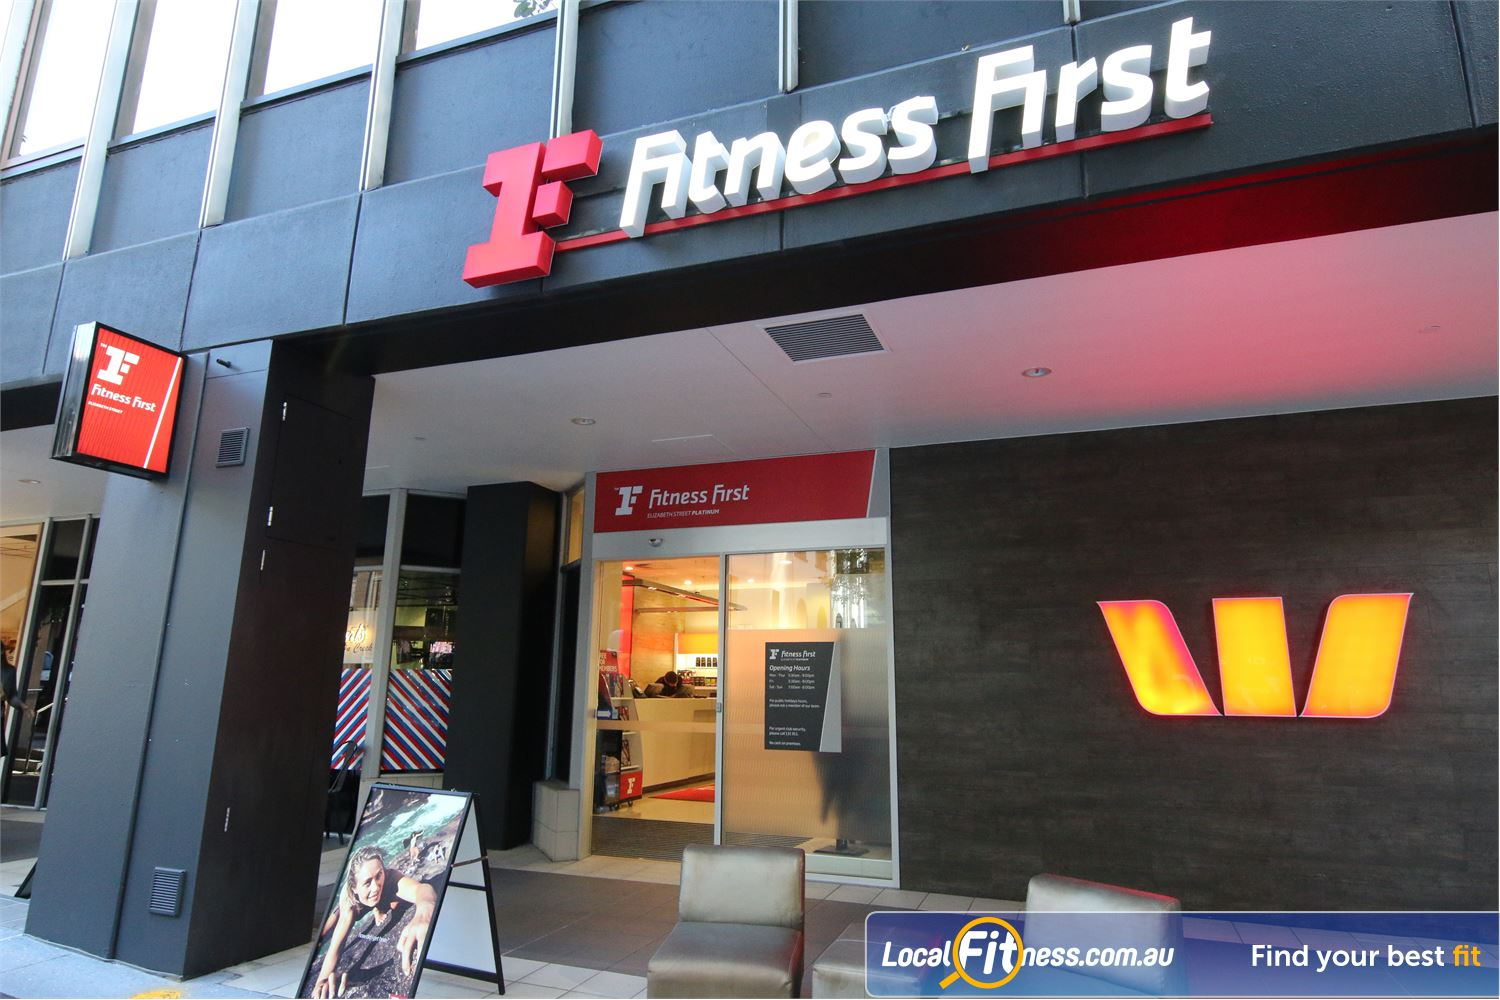 Fitness First Elizabeth St front photo